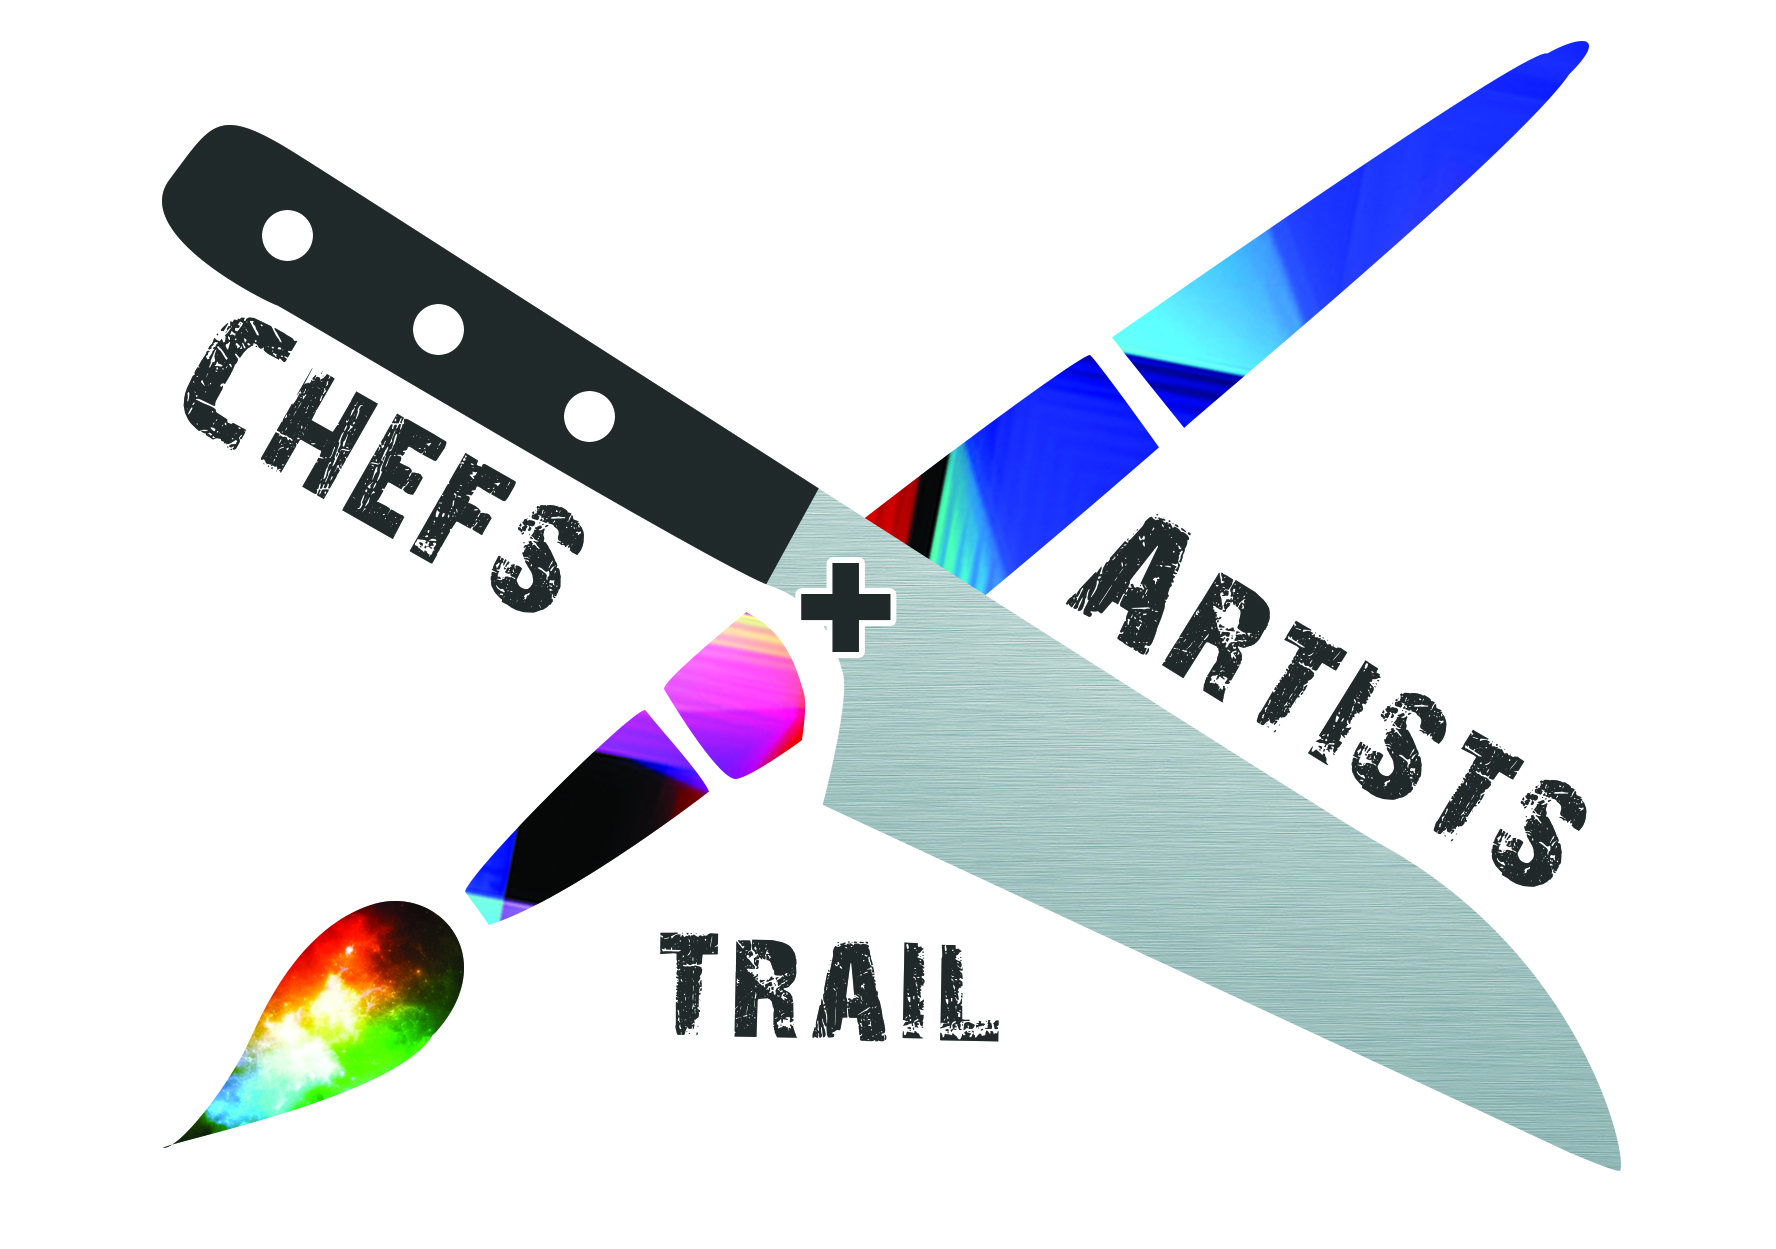 Chefs and Artists Trail logo.jpg